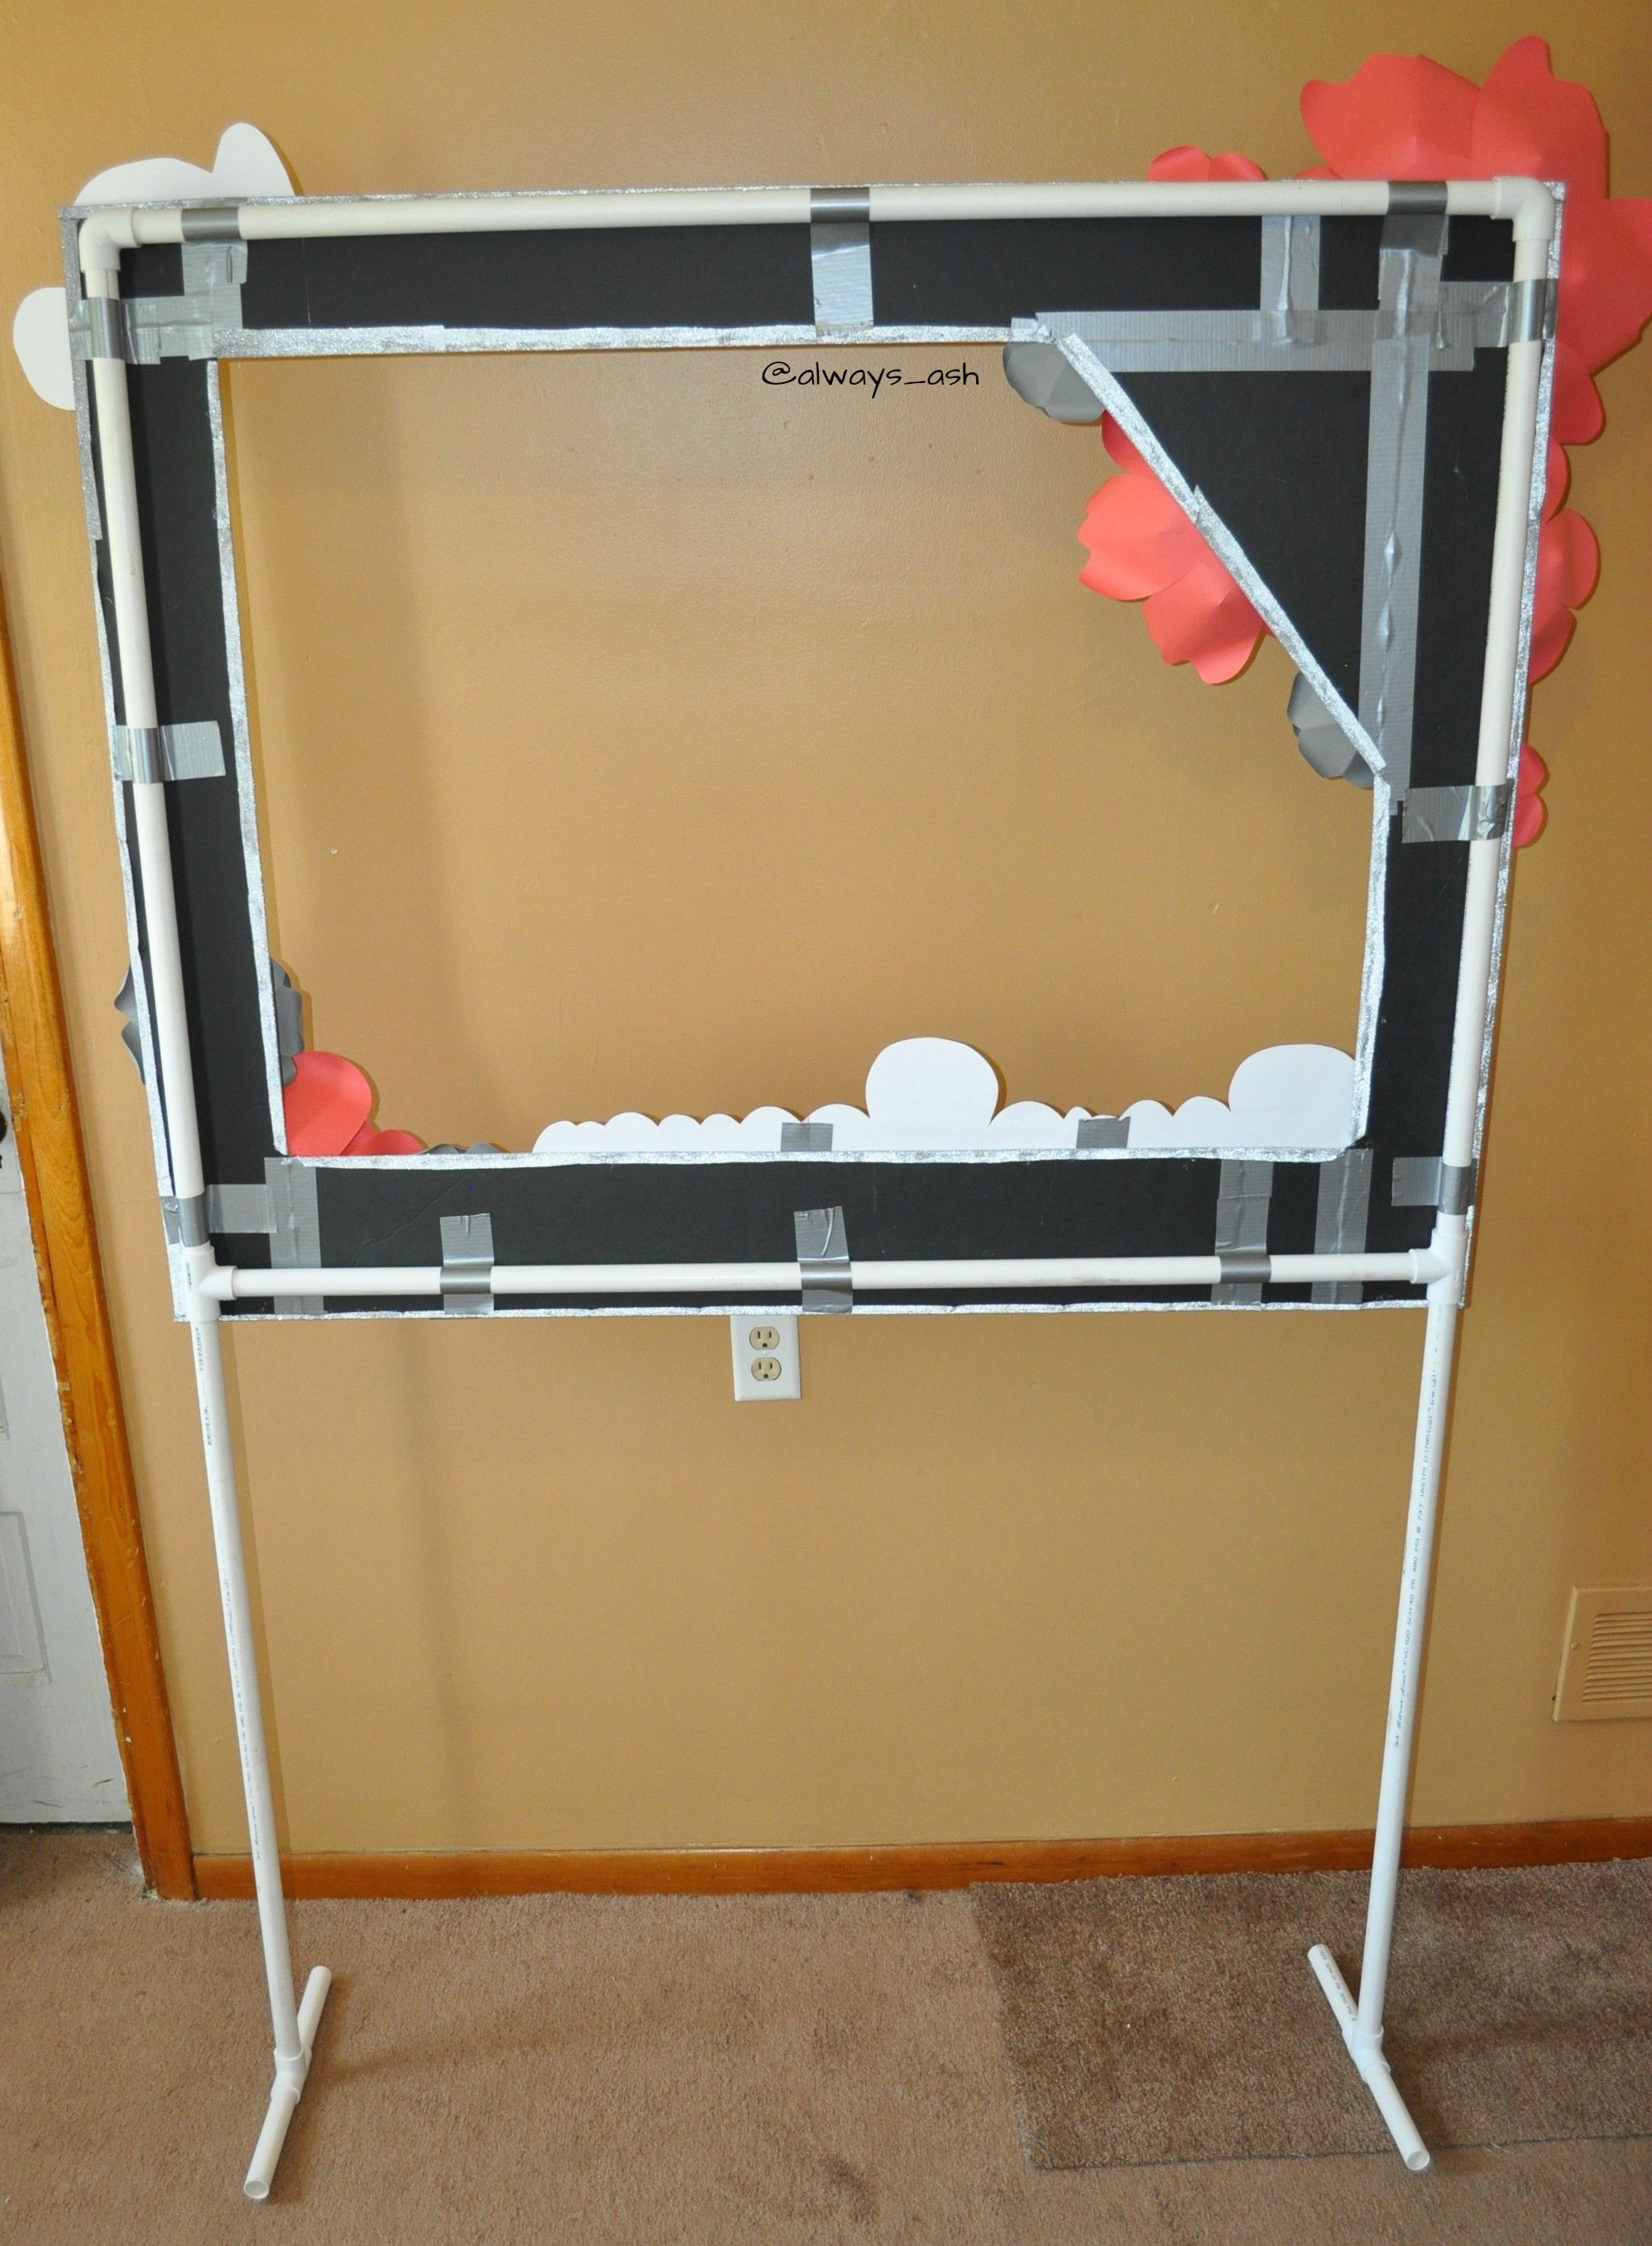 Best ideas about DIY Photo Booth Stand . Save or Pin The back of photo booth frame on pvc pipe stand duck Now.